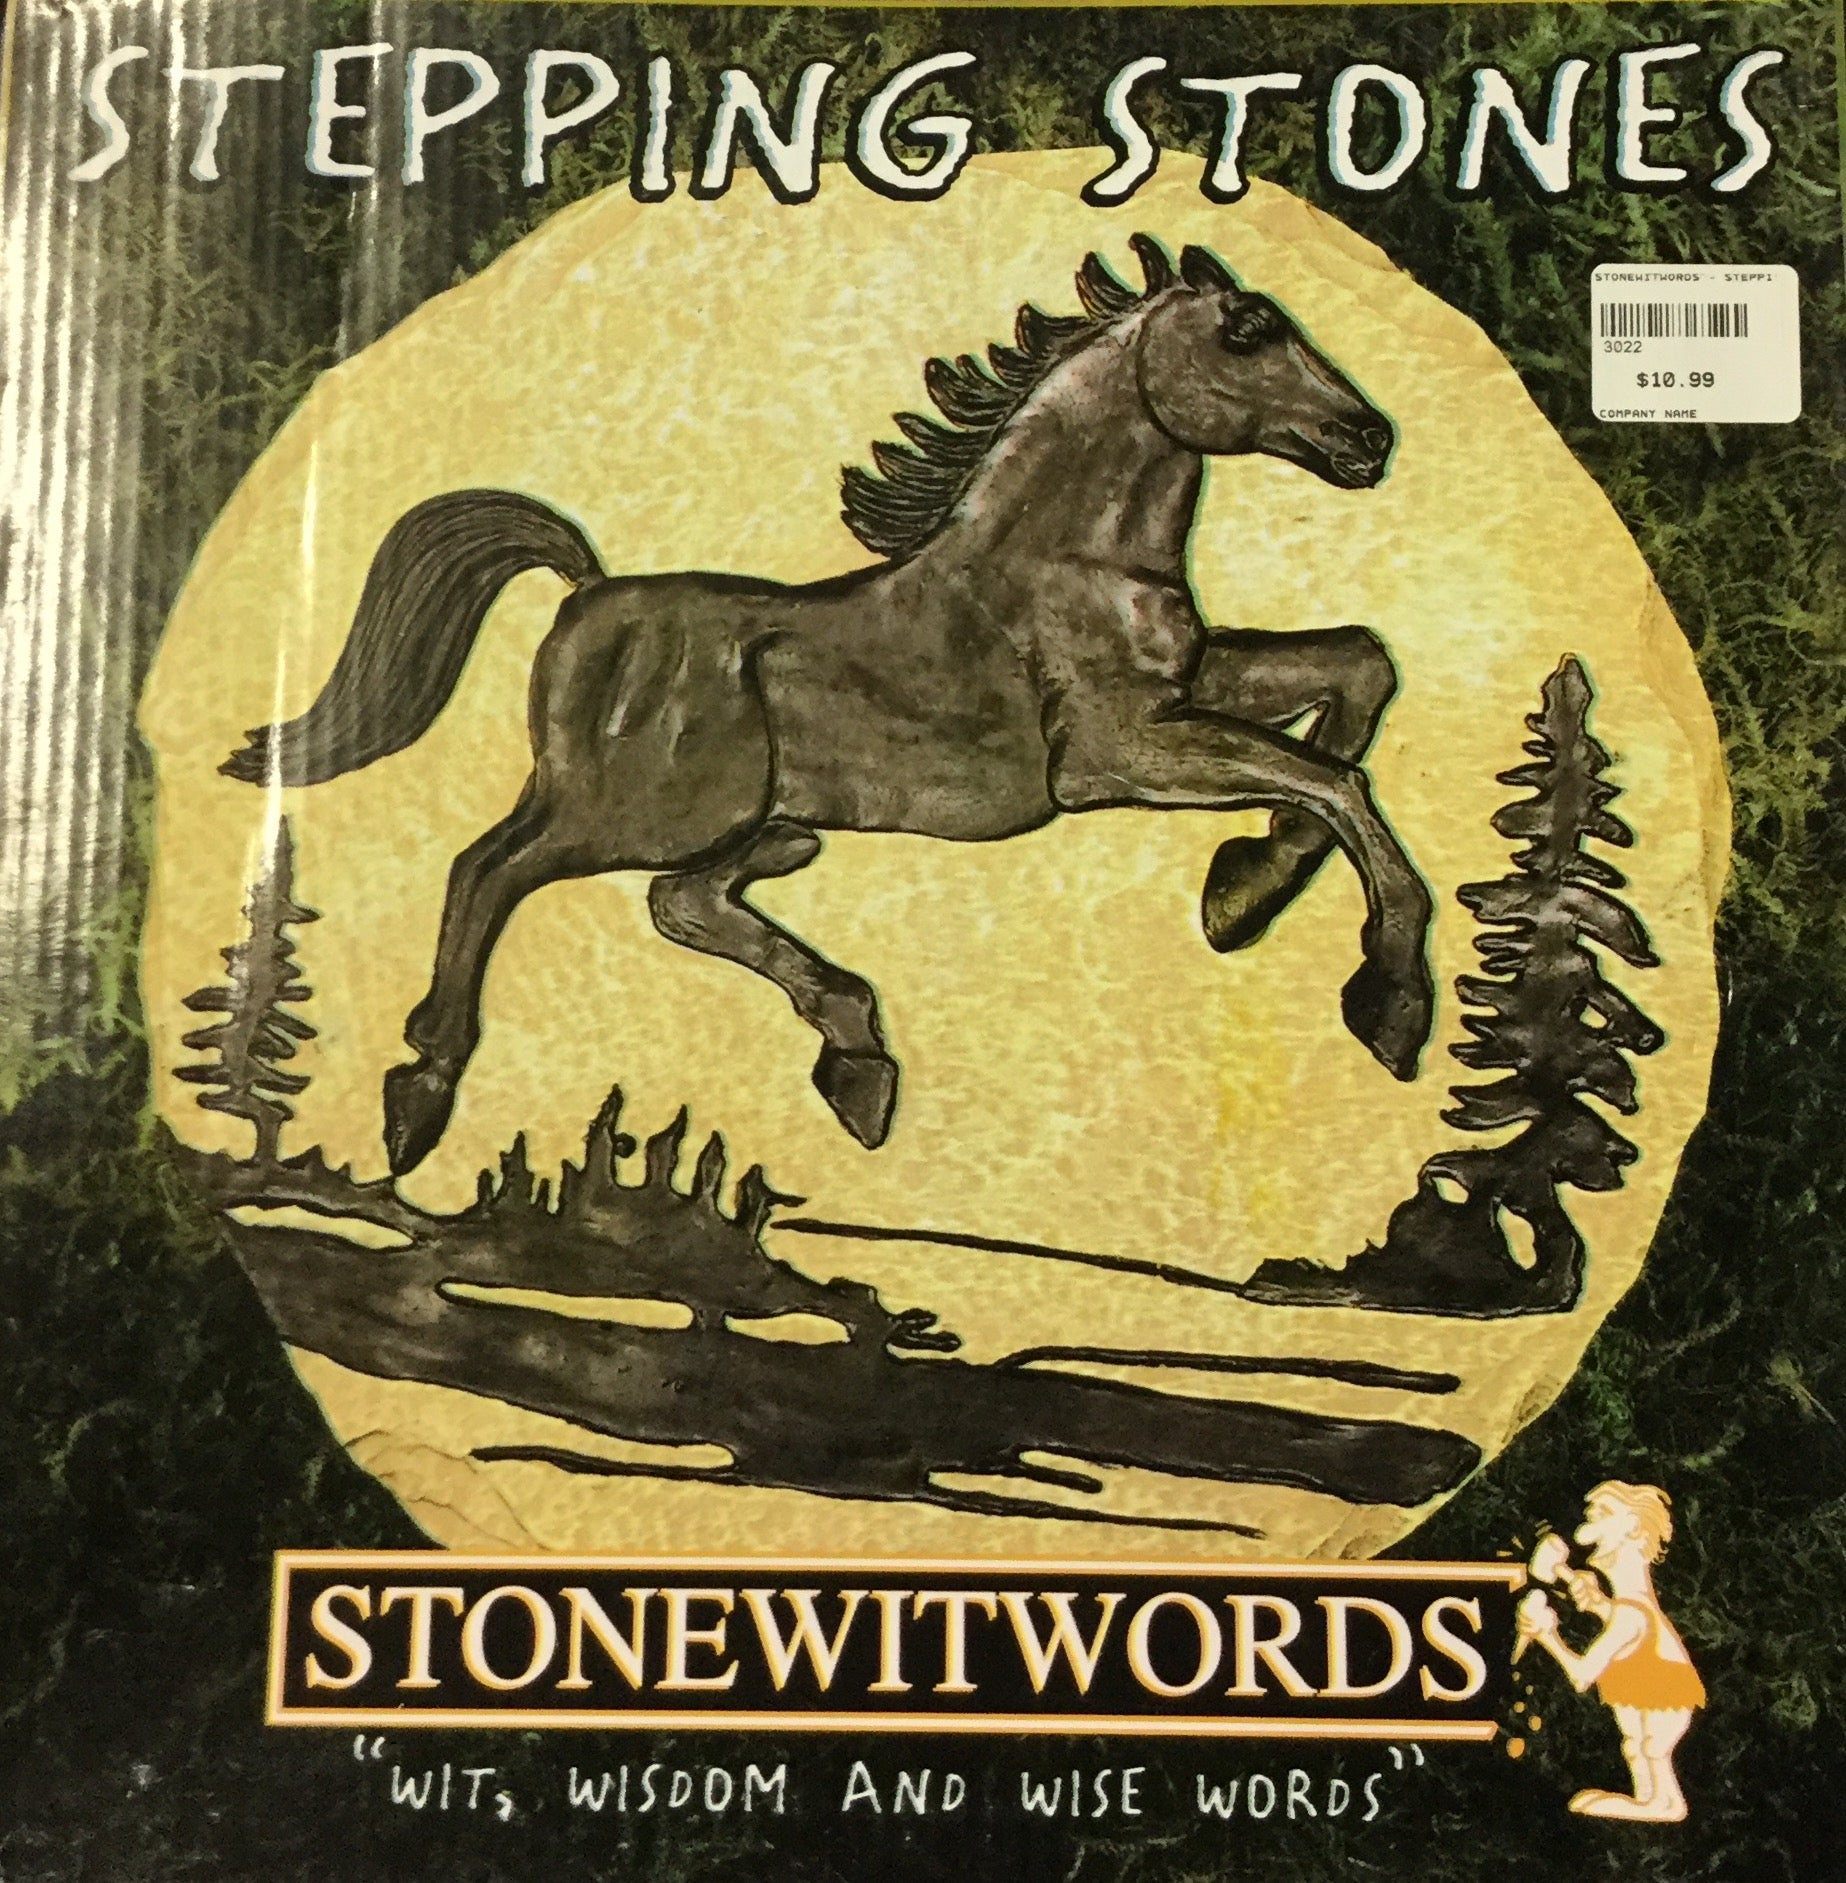 Stonewitwords - Stepping Stones SALE